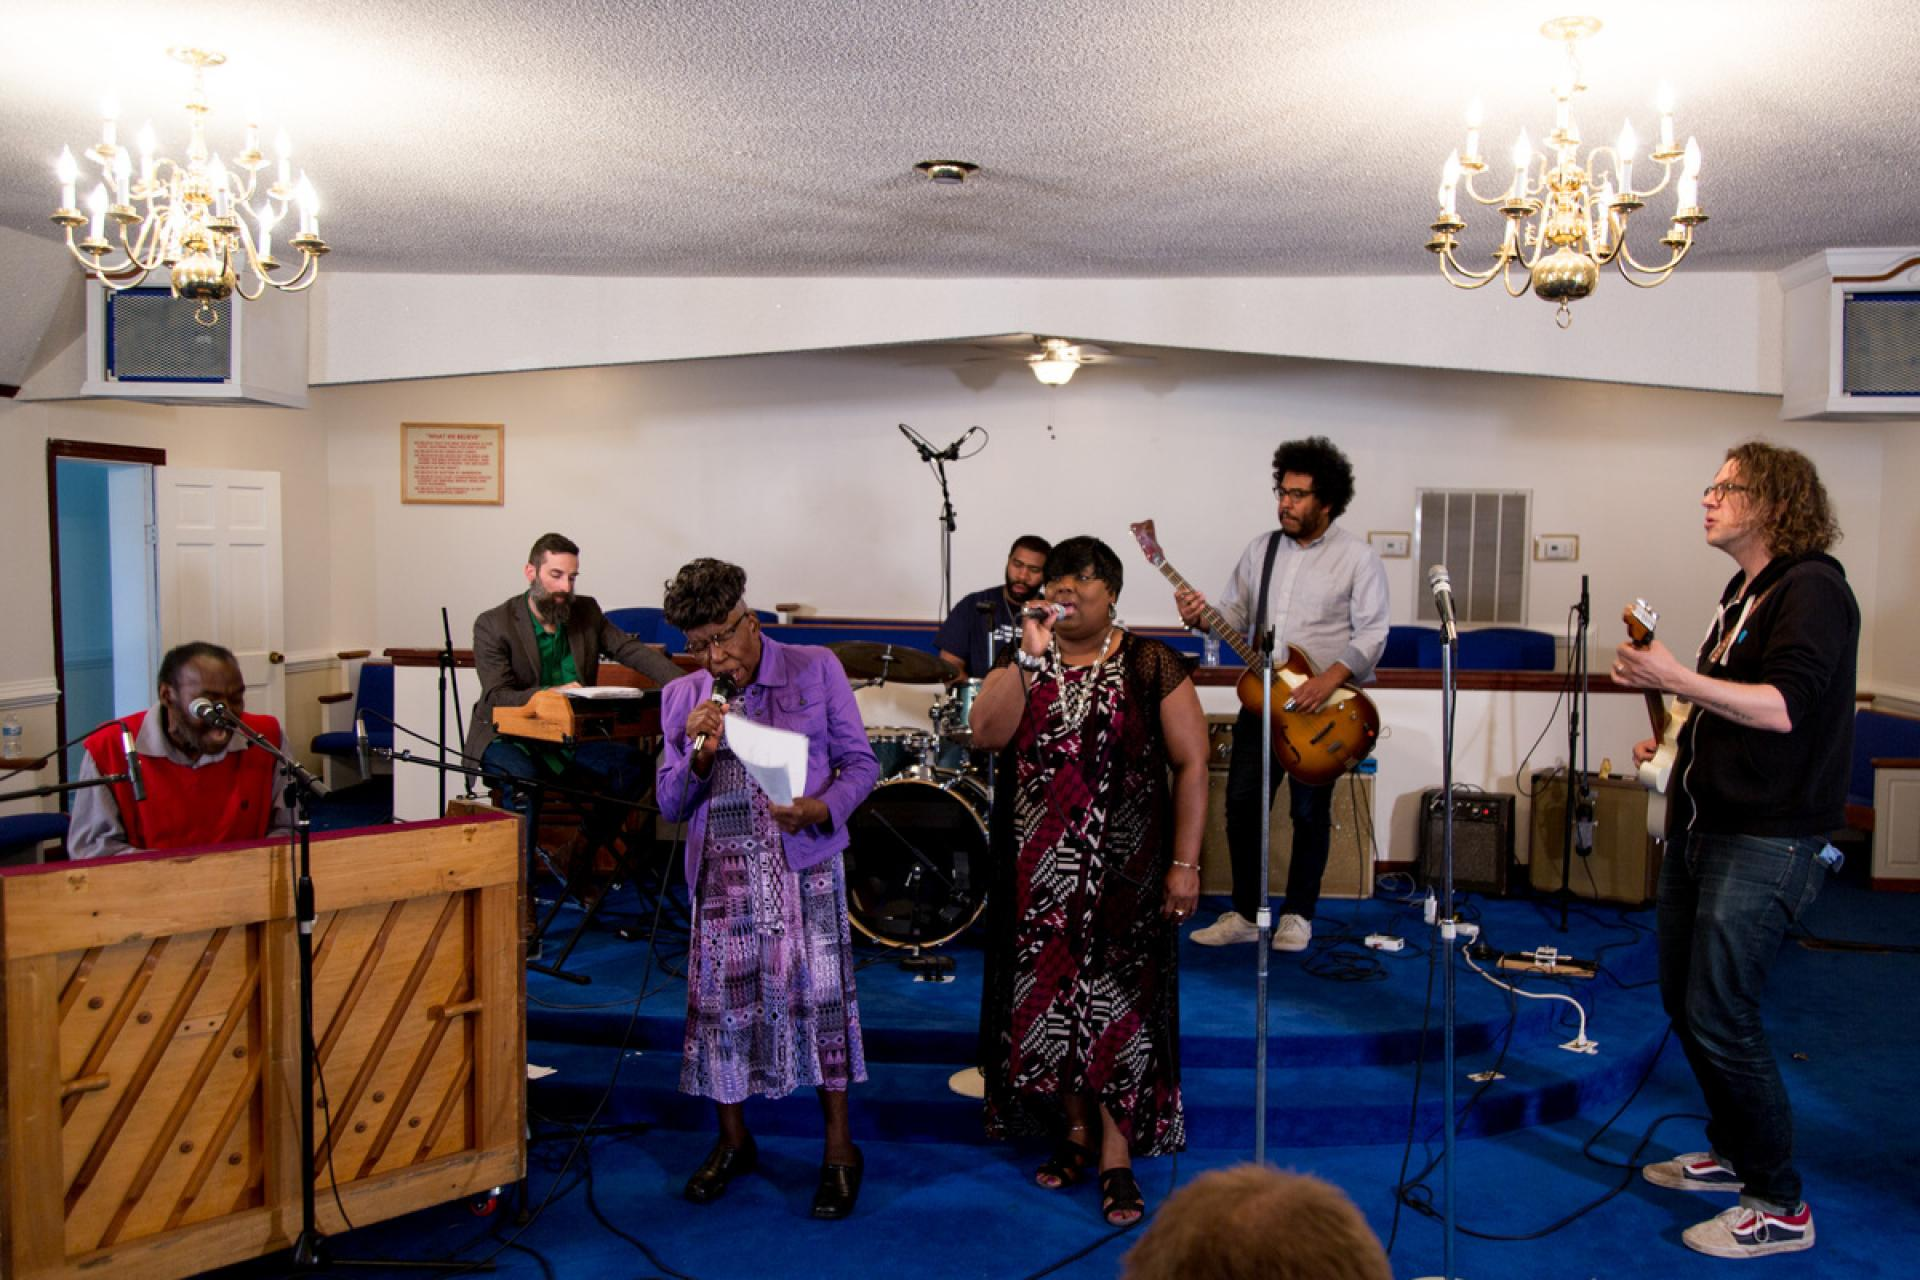 Rehearsal at Long Branch Disciples of Christ Church in Newton Grove, N.C.